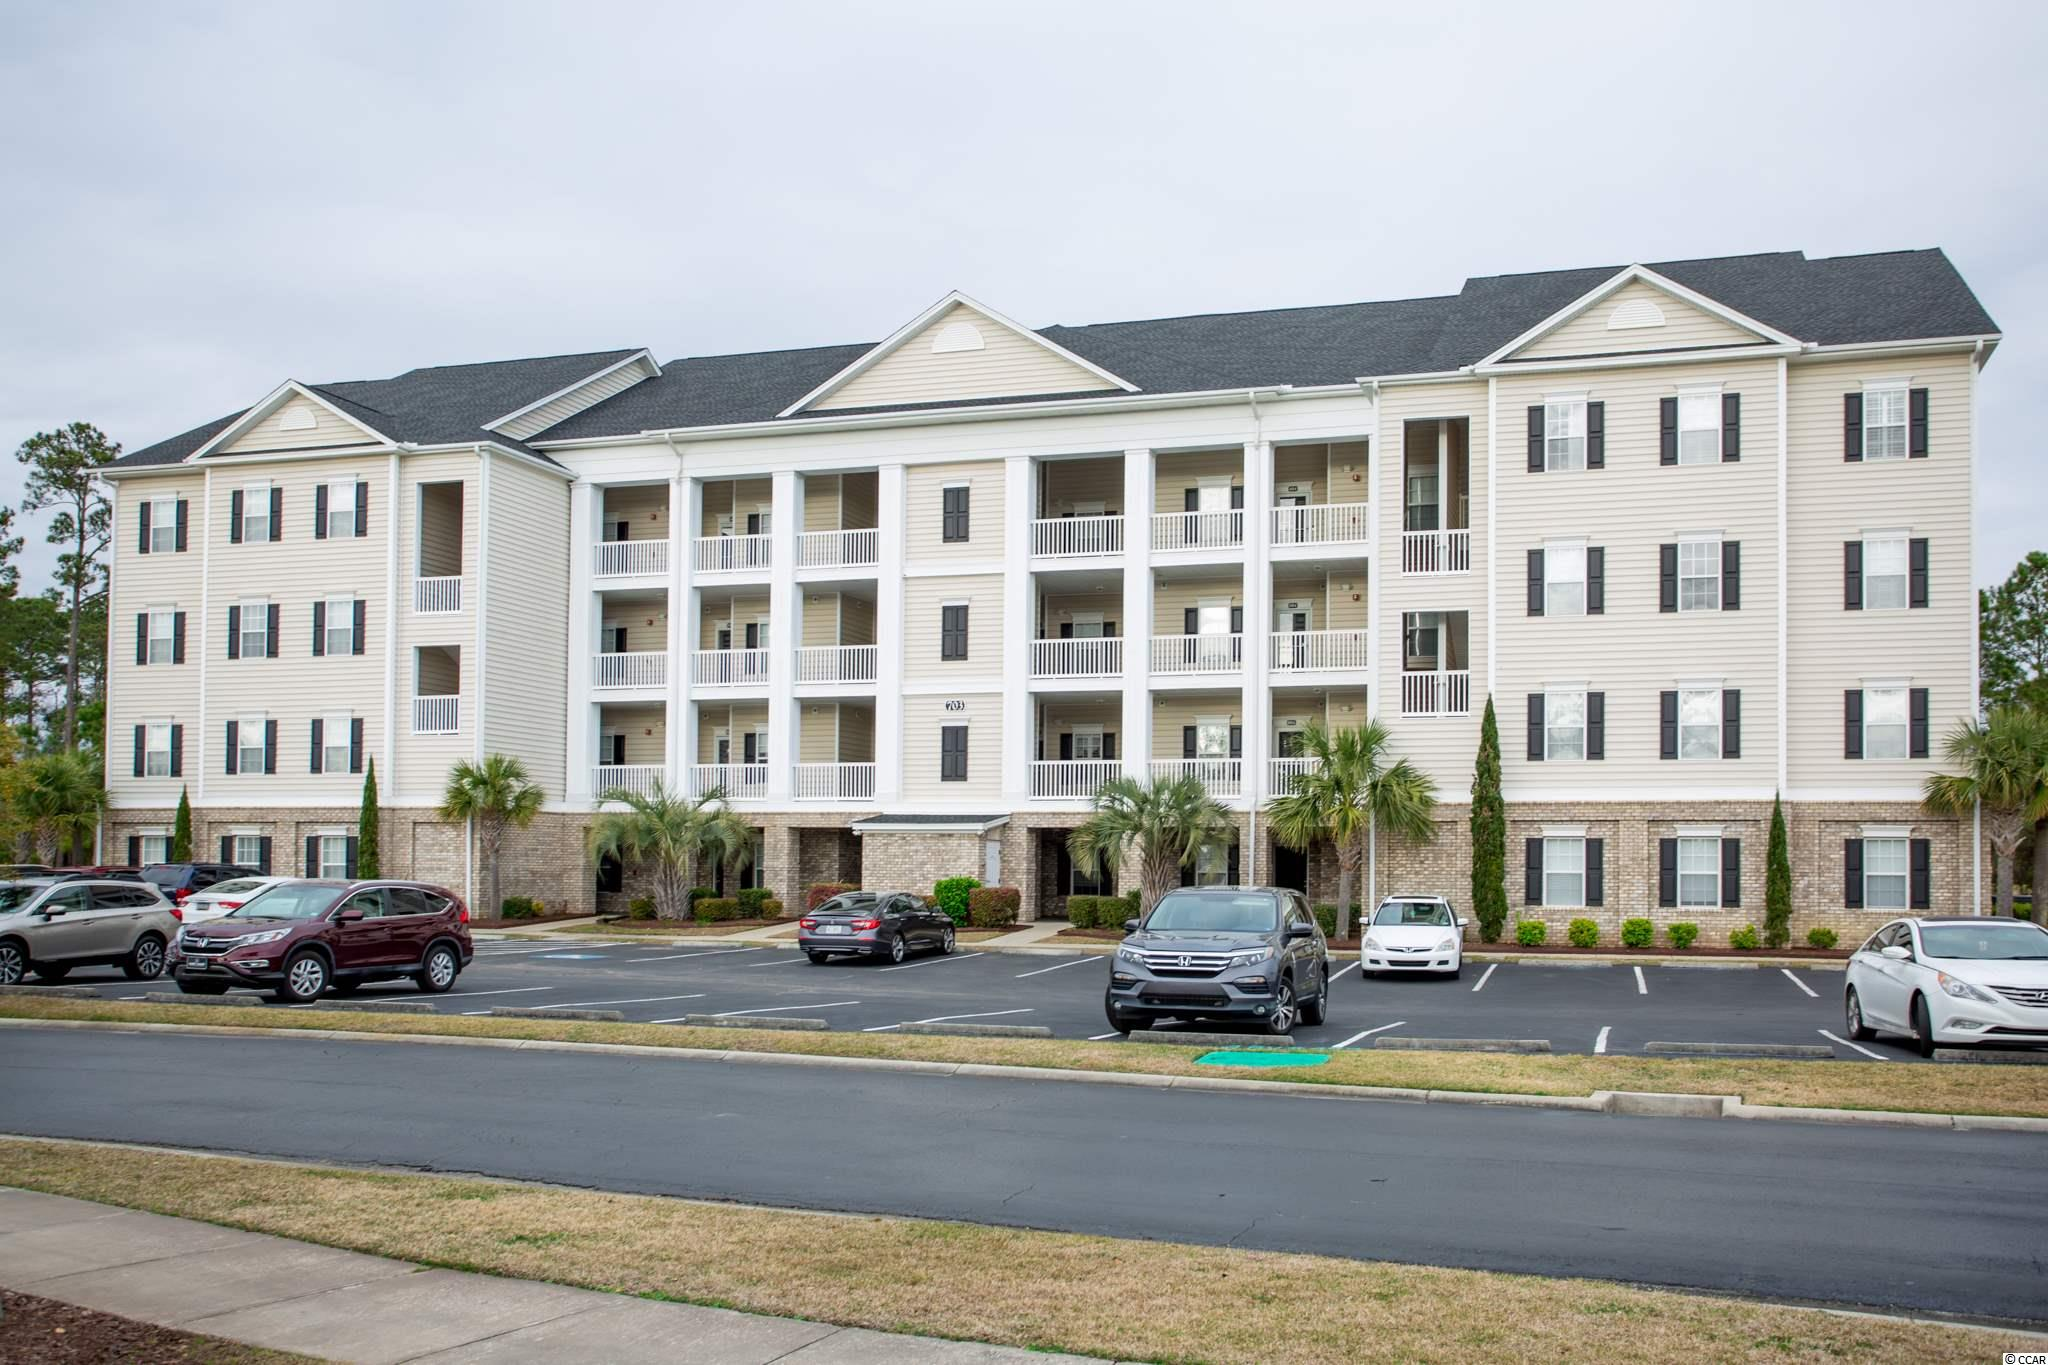 """Stunning 3 bedroom, 2 bath end unit Villa style condo in the gated golf course community of Villas @ International Club in Murrells Inlet. Not your ordinary condo – it is more spacious than most, offers lovely appointments, in an elevator building in a gated community with outstanding golf course and lake views.  Not a cookie cutter condo, the tone is set from the moment you enter this 2nd floor villa through the attractive front door with sidelight.  Enter into an open and elegant foyer with tray ceiling, rope lighting, crown molding, chair rail, tile floors, 5 ¼"""" baseboards and quality architectural details.  Foyer leads into a spacious great/family room with attractive columns, three-sided glass fireplace, tasteful ceiling fan, carpeting and sliders to the screened porch.  Open kitchen with white cabinets and appliances including French door refrigerator, Corian countertops, pantry and breakfast bar.  Bright and cheery dining room with windows and sliders to spacious screen porch overlooking the 13th fairway of International Club Golf Course. Laundry room with washer & dryer that convey and shelving. Split bedroom plan with spacious master bedroom with walk-in closet, tray ceiling, fan, crown molding, wall sconces and sliders leading to the 3-season porch.  Master bath with separate walk-in shower, jacuzzi tub, private water closet, lovely large vanity, two sinks, tile floor and linen closet.  Family and friends will be extremely comfortable on the other side of the condo in the two large guest bedrooms with walk-in closets, crown molding, carpeting and fans.  Guest bath with tile and tub/shower. Start your day on the oversized screened porch sipping your favorite beverage and enjoying the outstanding view of the pond and tree-lined golf course. What a great way to start your day enjoying the peaceful views and nature at its best! This will be the perfect spot to entertain family and friends.  The storage closet on the porch will be ideal for storing golf equipme"""